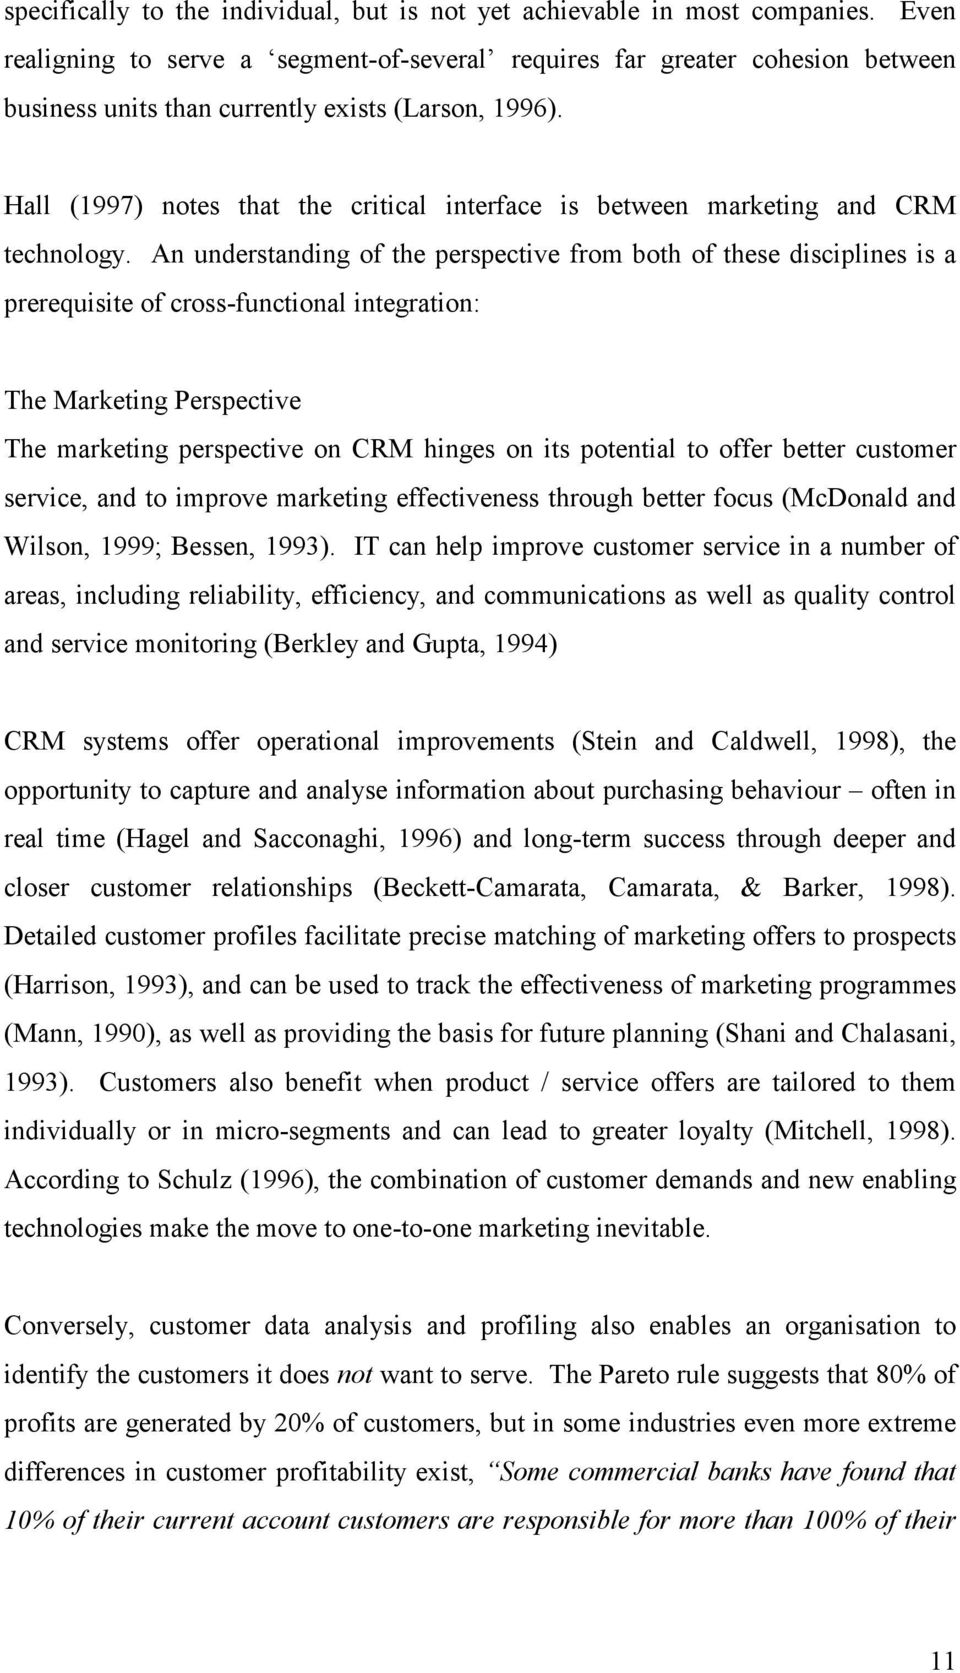 Hall (1997) notes that the critical interface is between marketing and CRM technology.